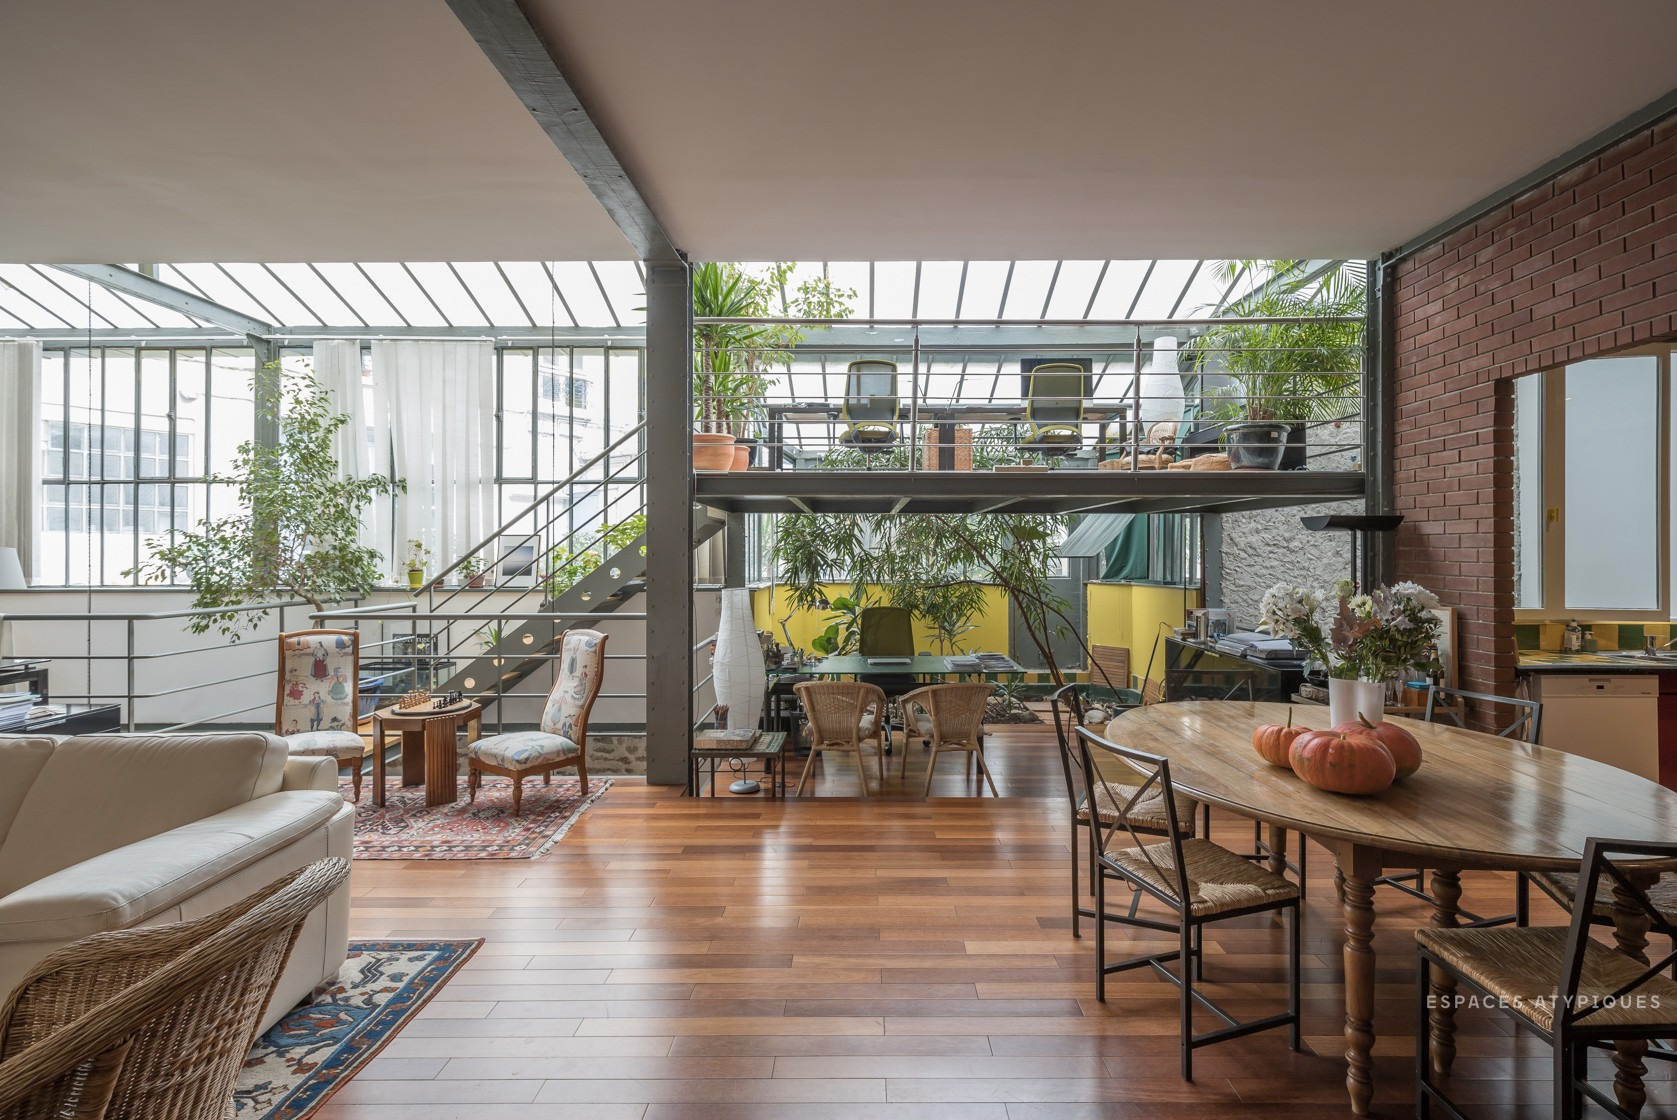 Paris home with its own climbing wall lists for €2.4m